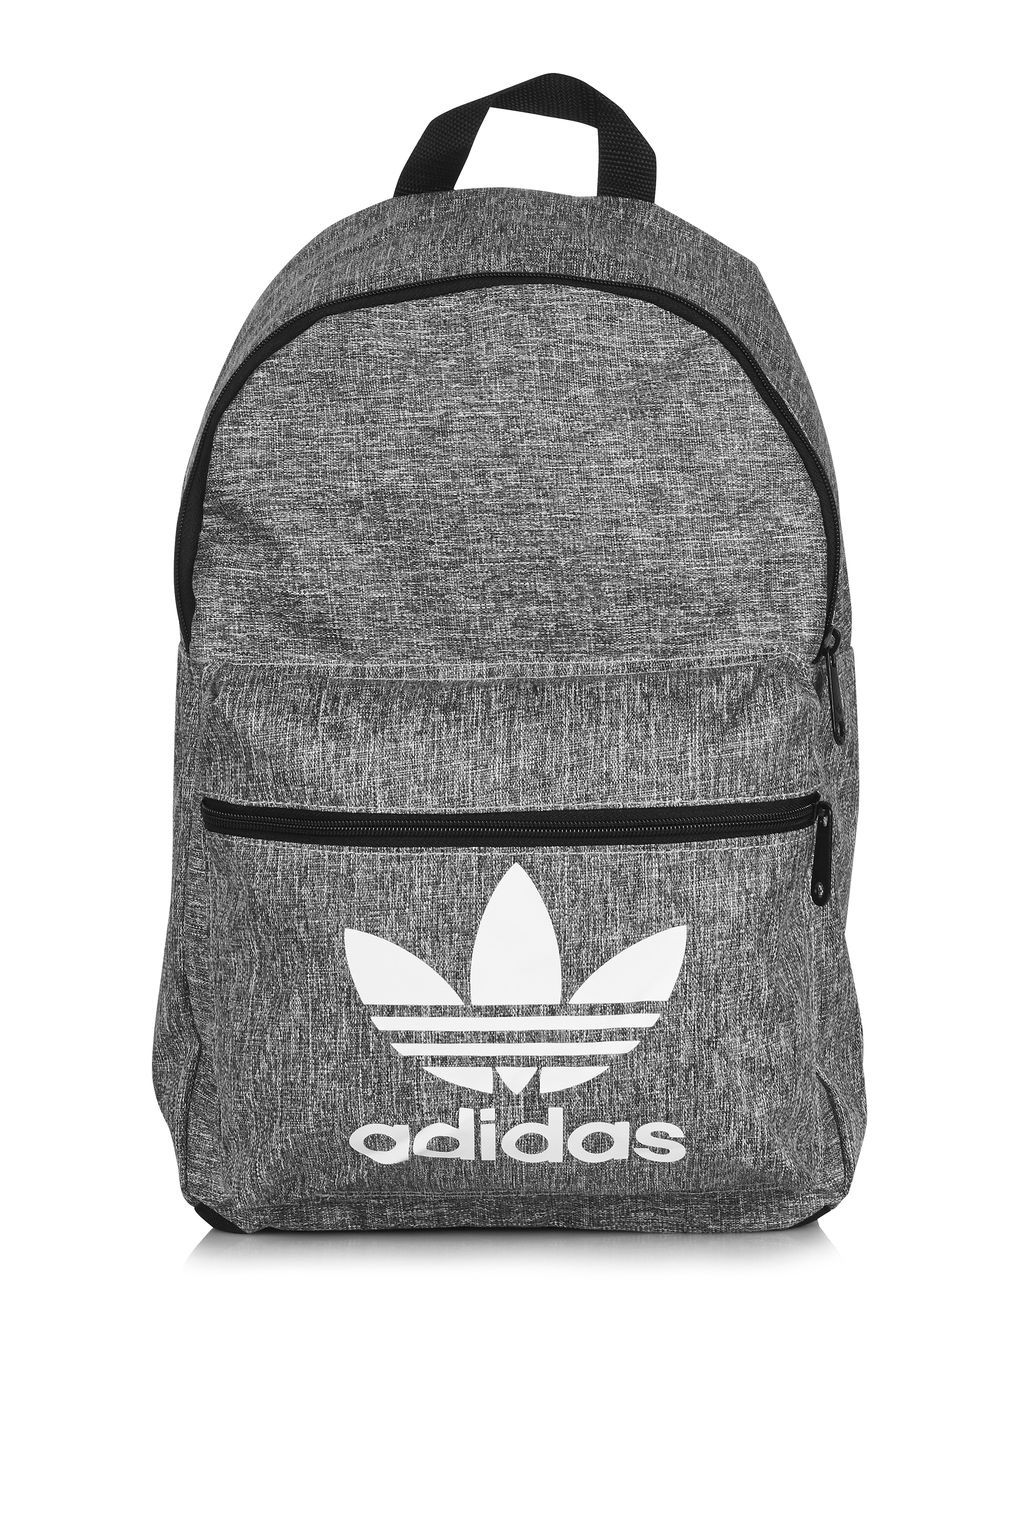 d01db59a6d Grey Backpack by Adidas Originals in 2019